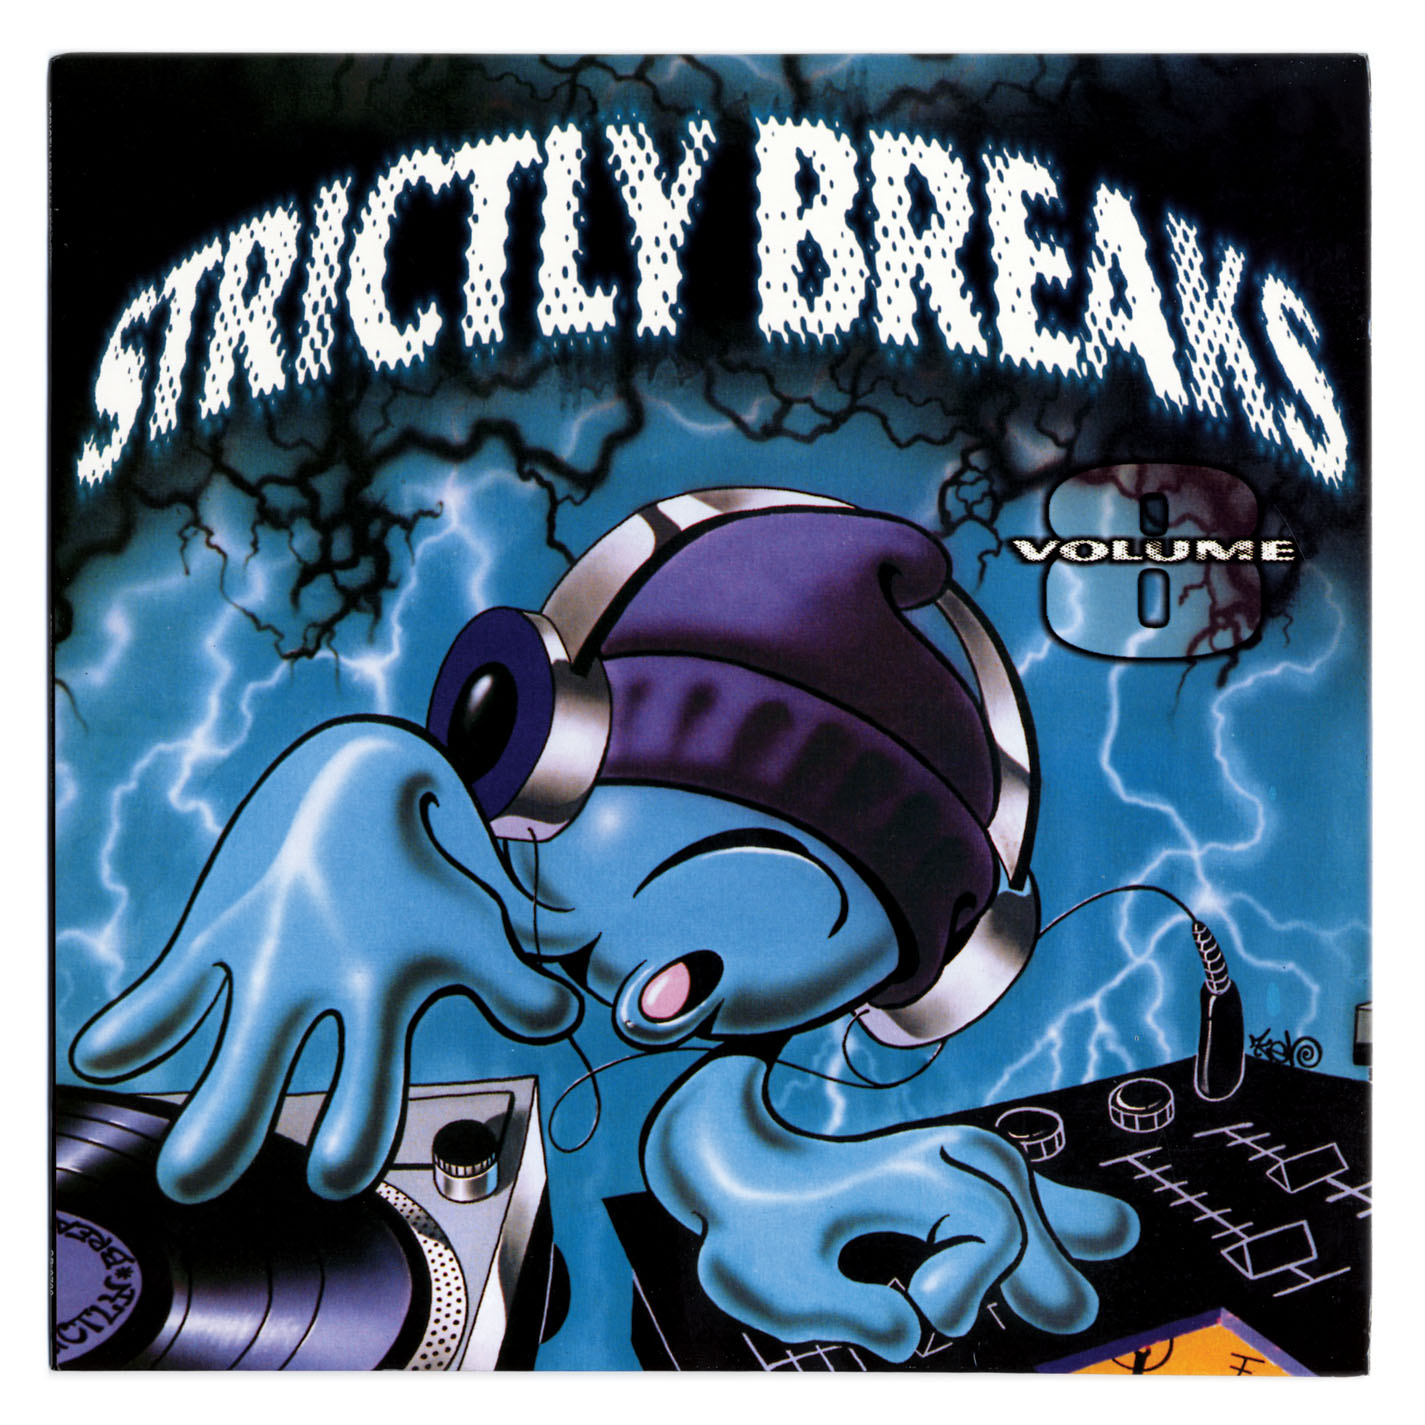 Strictly Breaks Volume 8 (2000) (CD) (320)